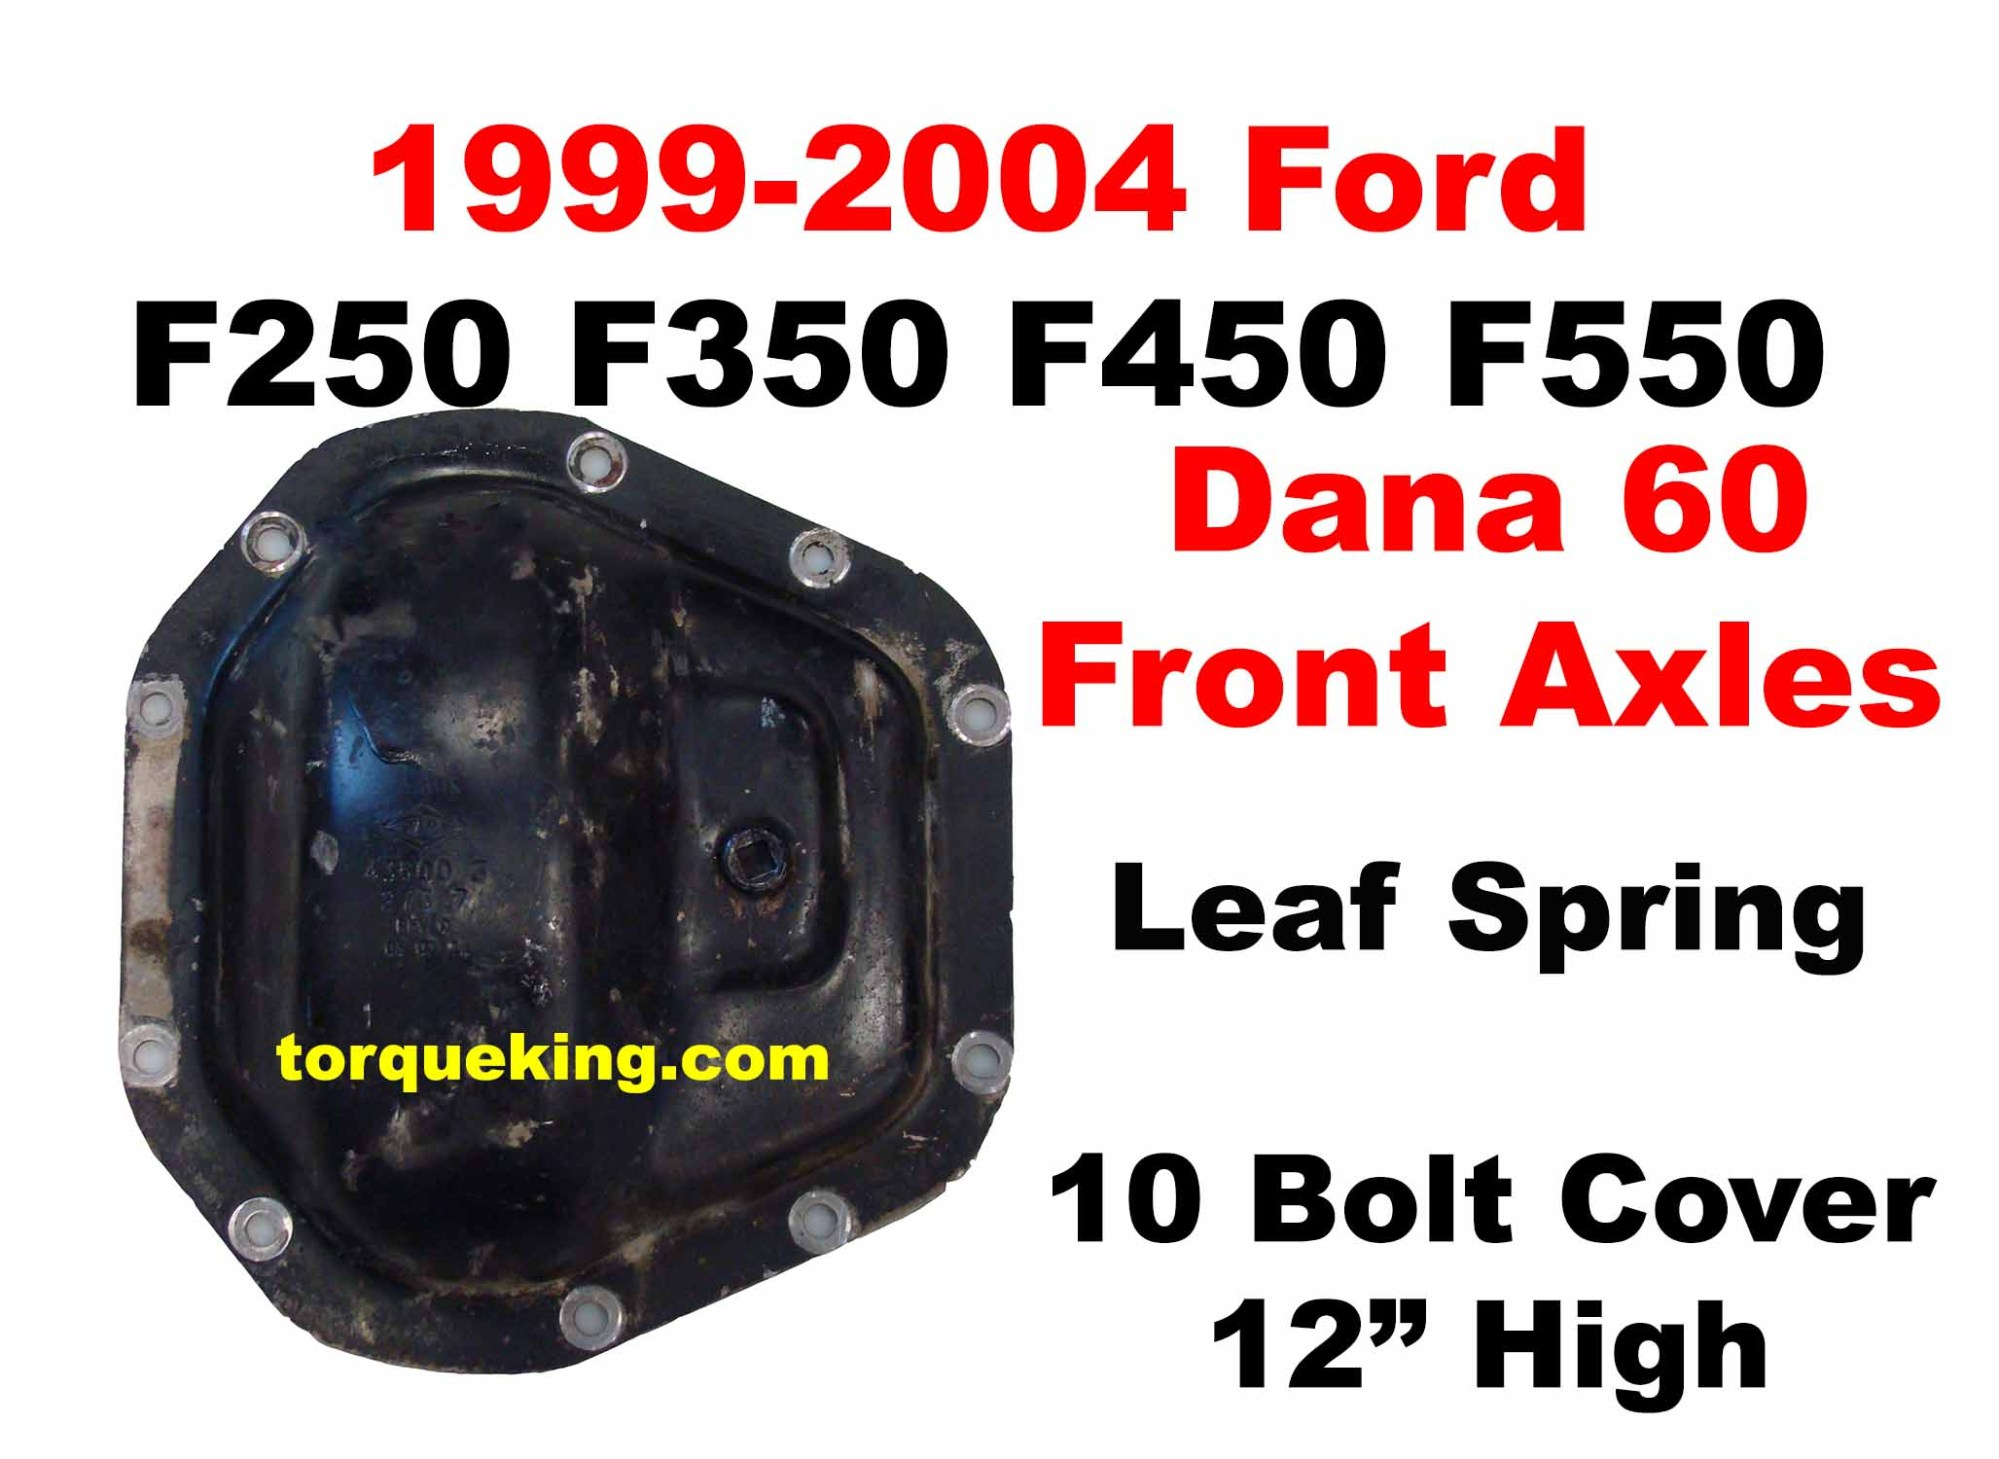 hight resolution of 1999 2004 ford dana60 front axle cover lq